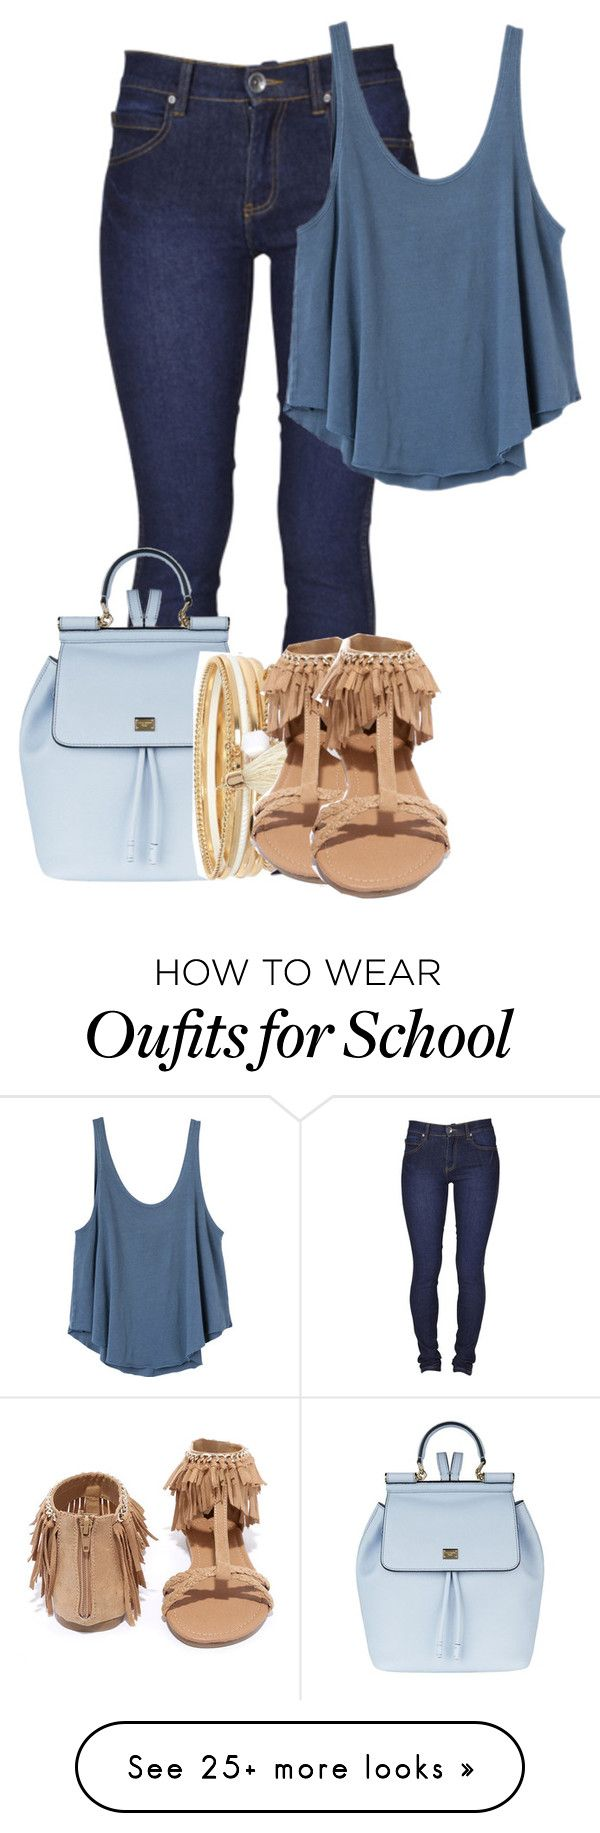 """Back To School - 16"" by brechris on Polyvore featuring Dr. Denim, RVCA, Dolce&Gabbana, River Island and Qupid"